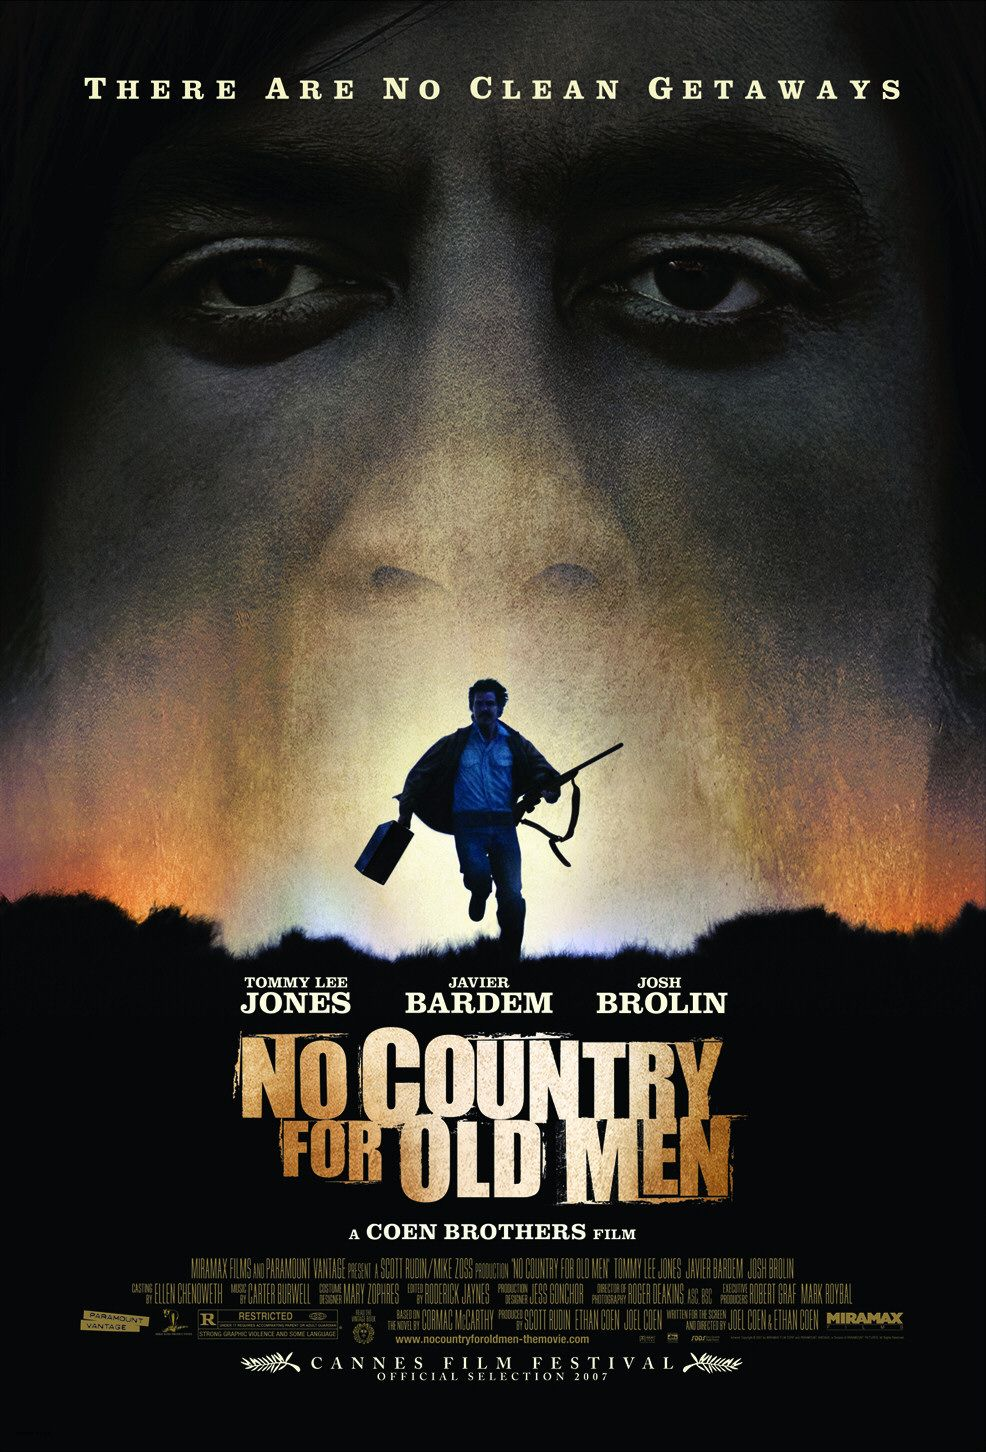 no-country-for-old-men-poster.jpg